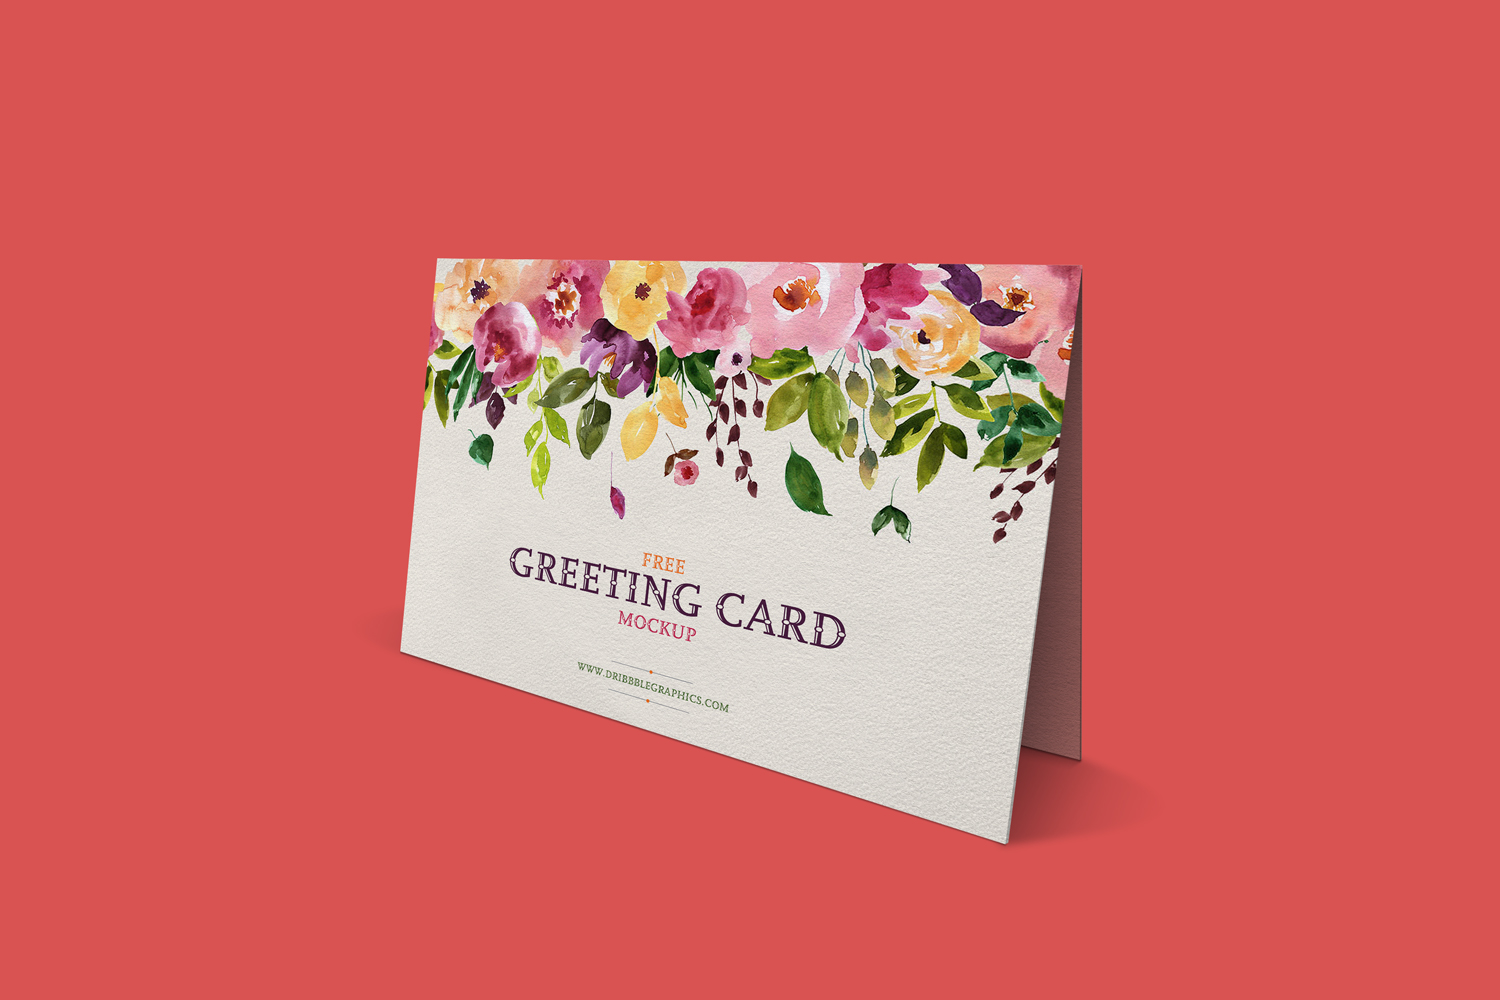 Free-Standing-Greeting-Card-Mockup